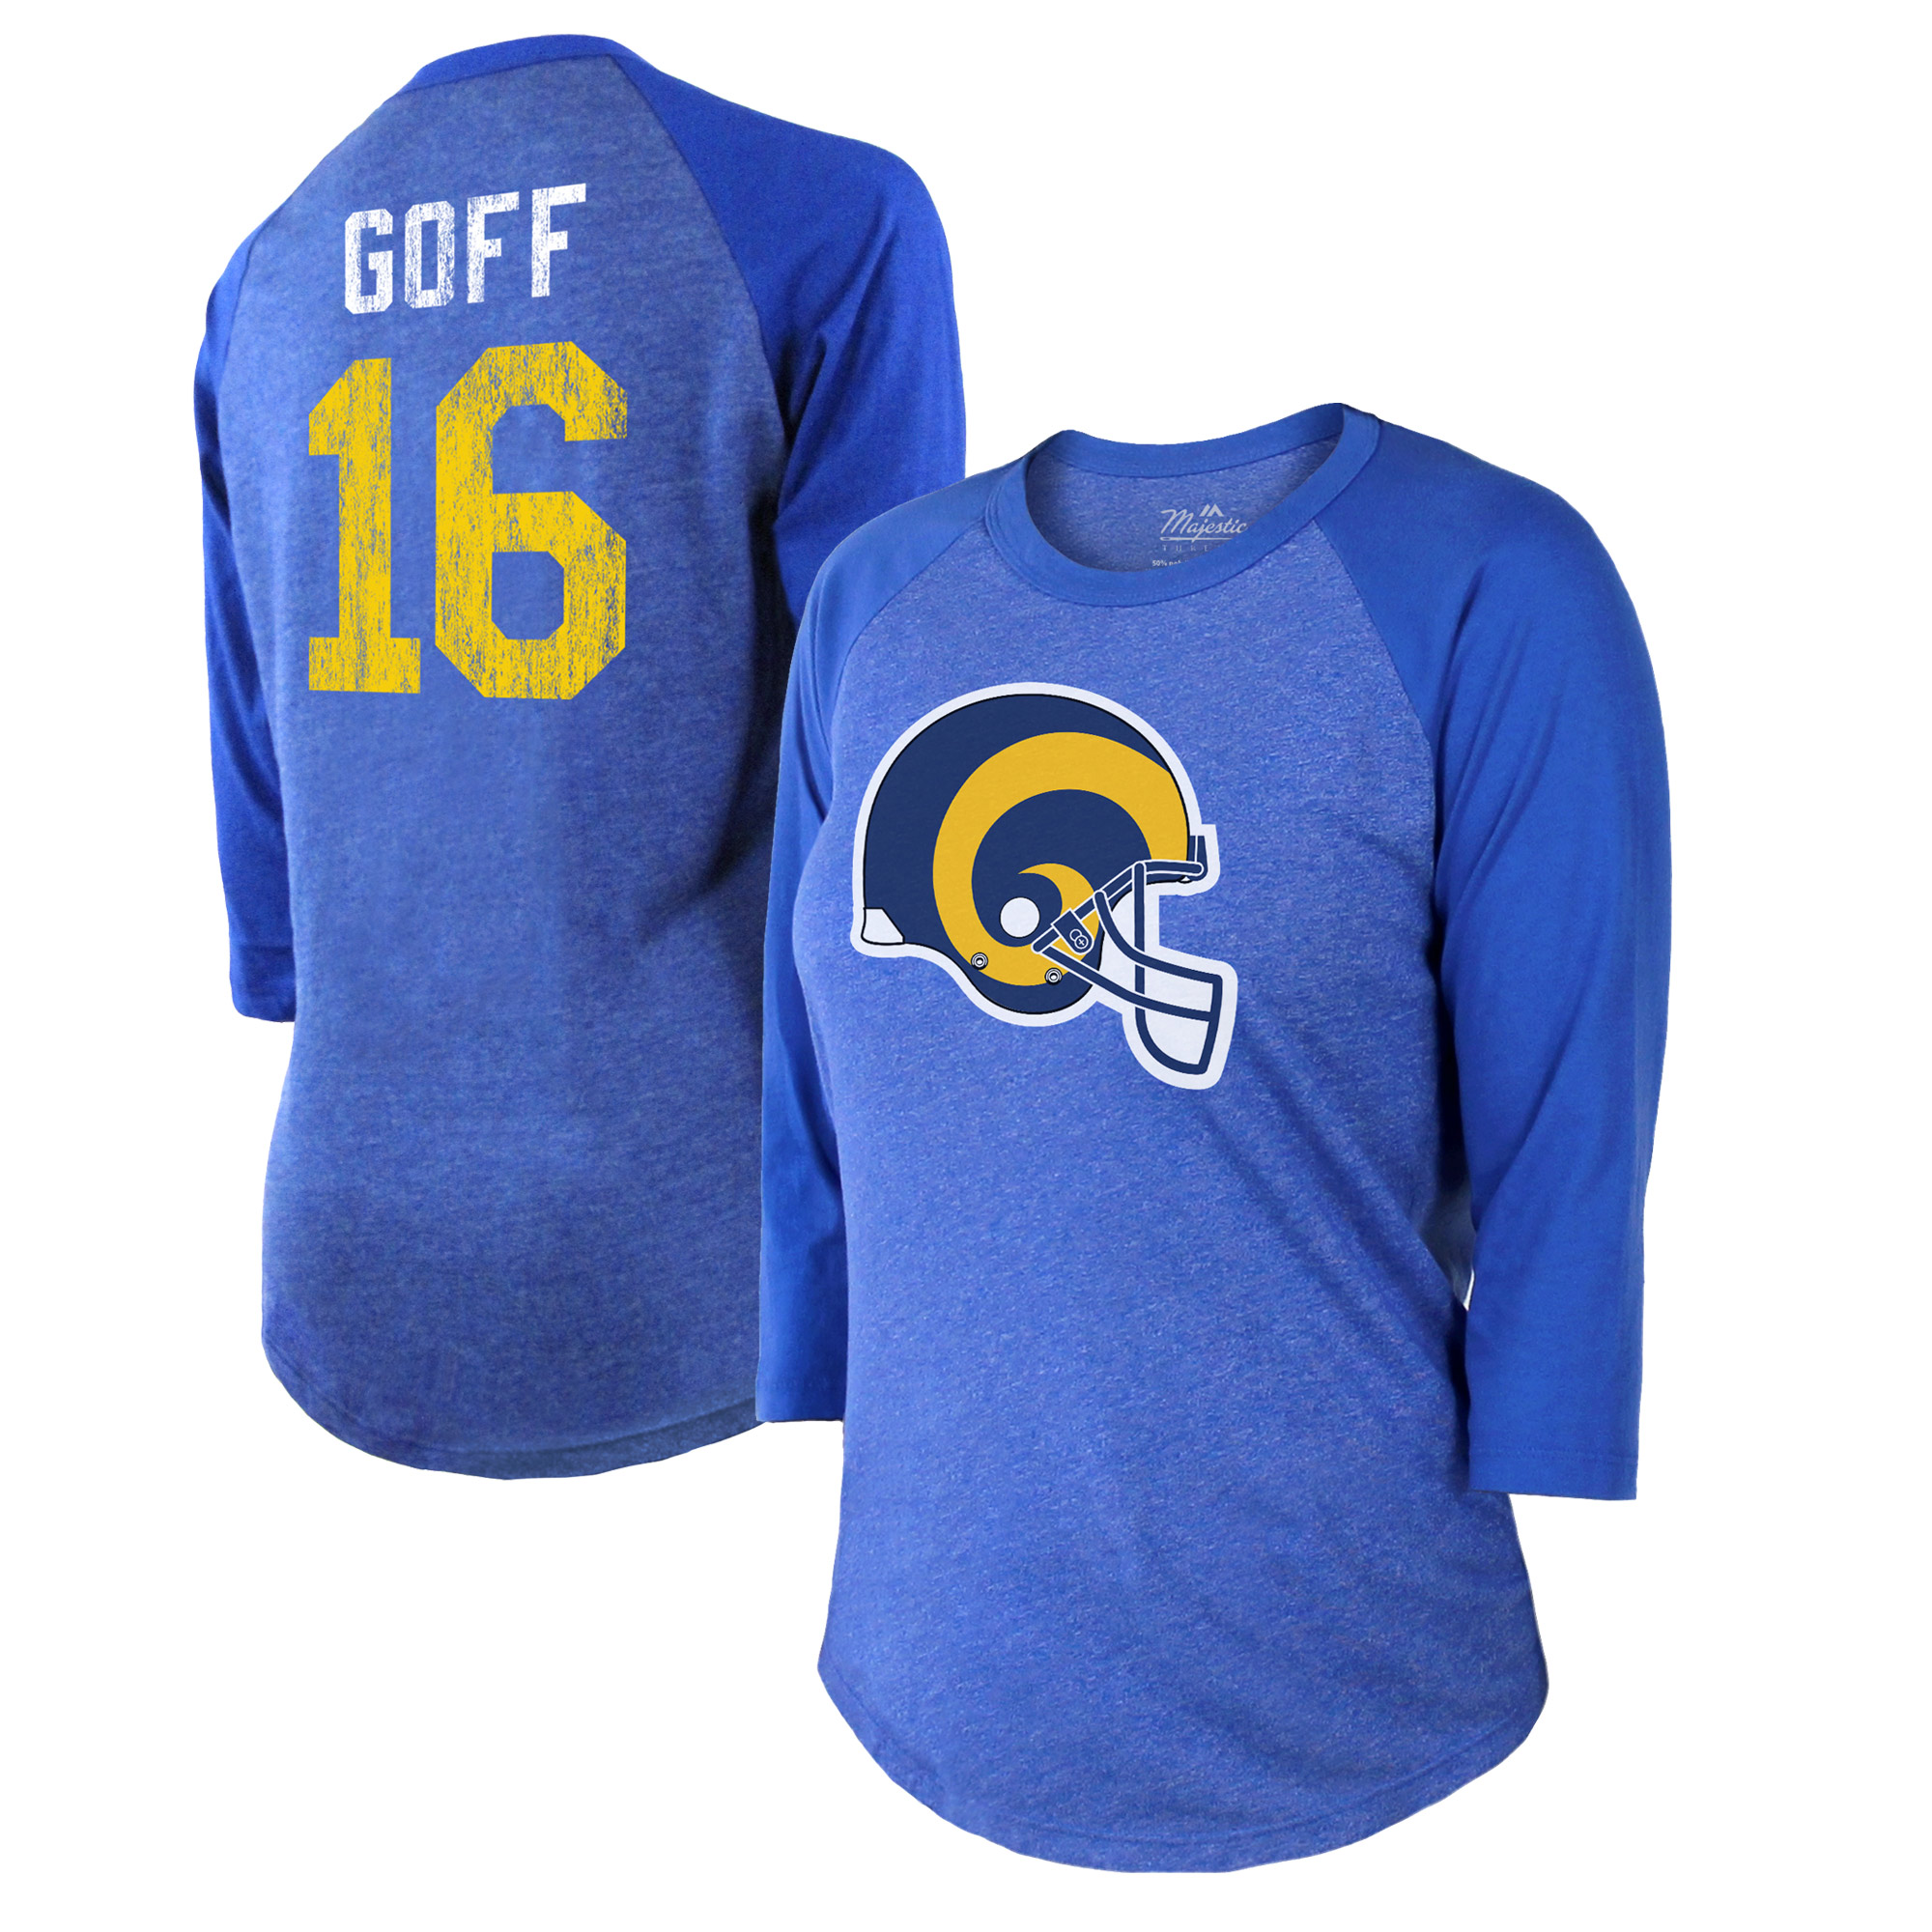 Jared Goff Los Angeles Rams Majestic Threads Women's Player Name & Number Raglan Tri-Blend 3/4-Sleeve T-Shirt - Royal